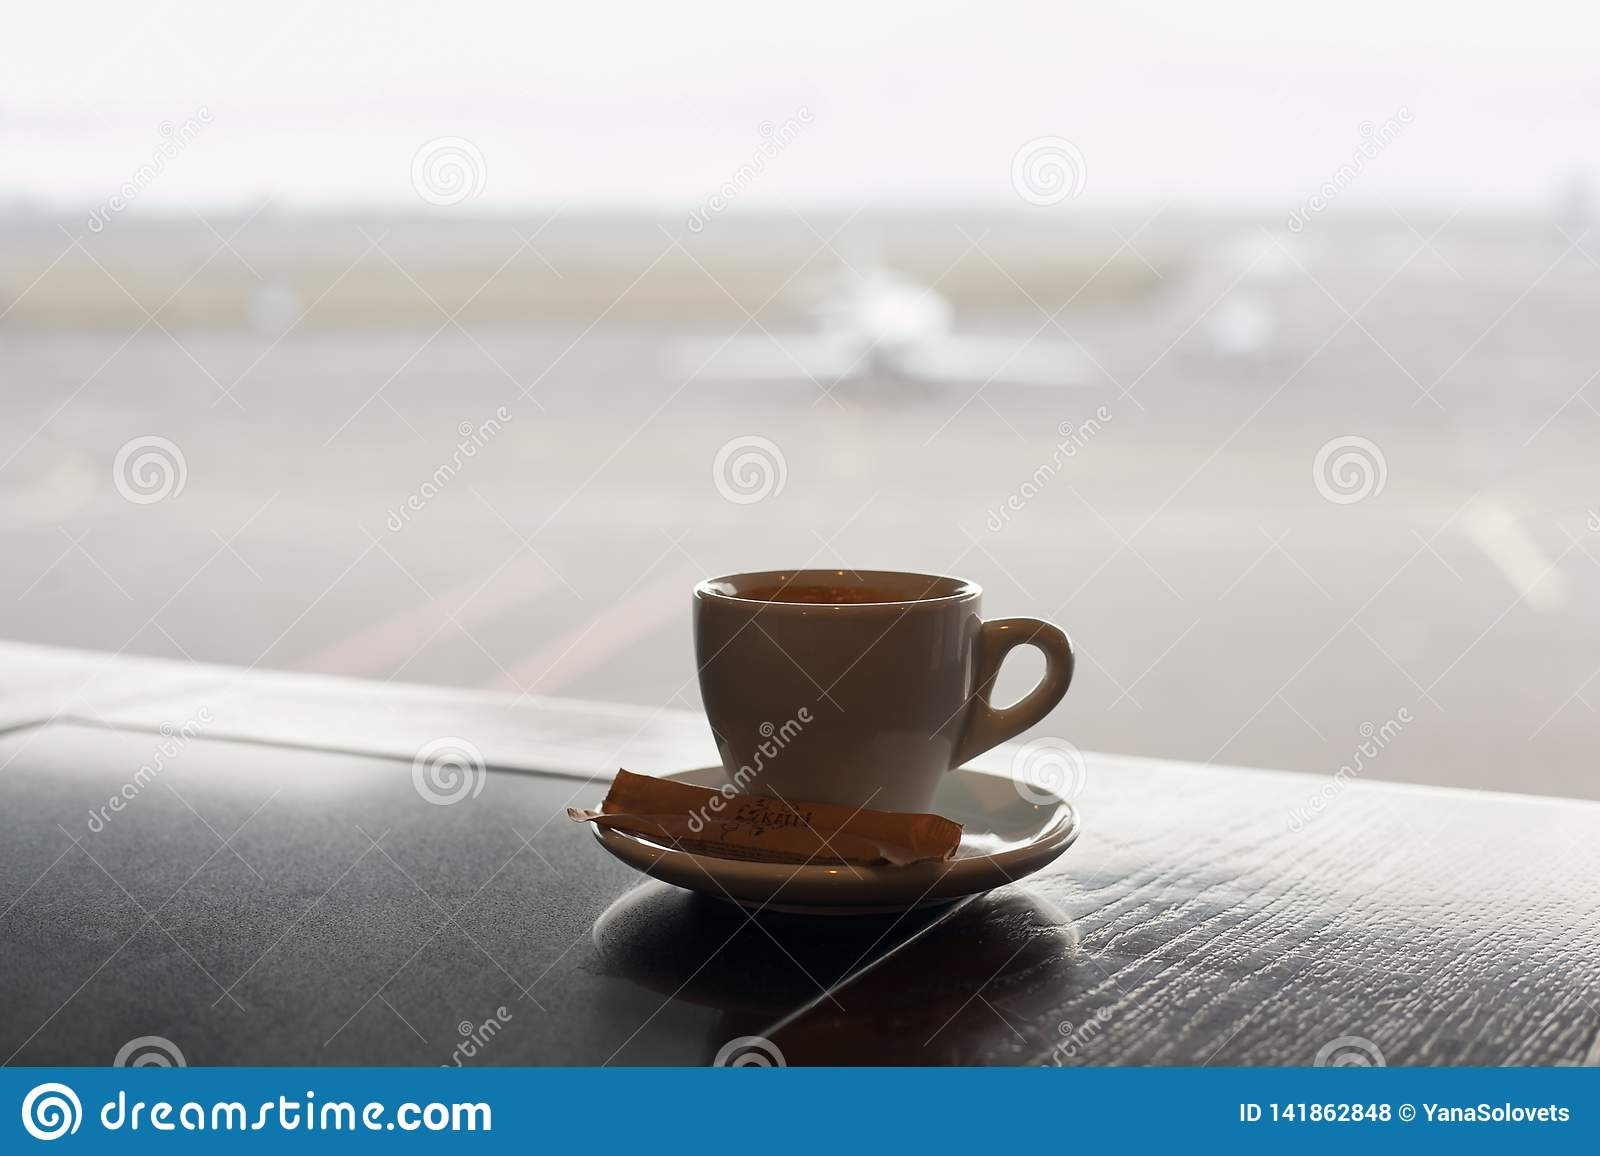 Cup of coffee on the table in airport cafe.